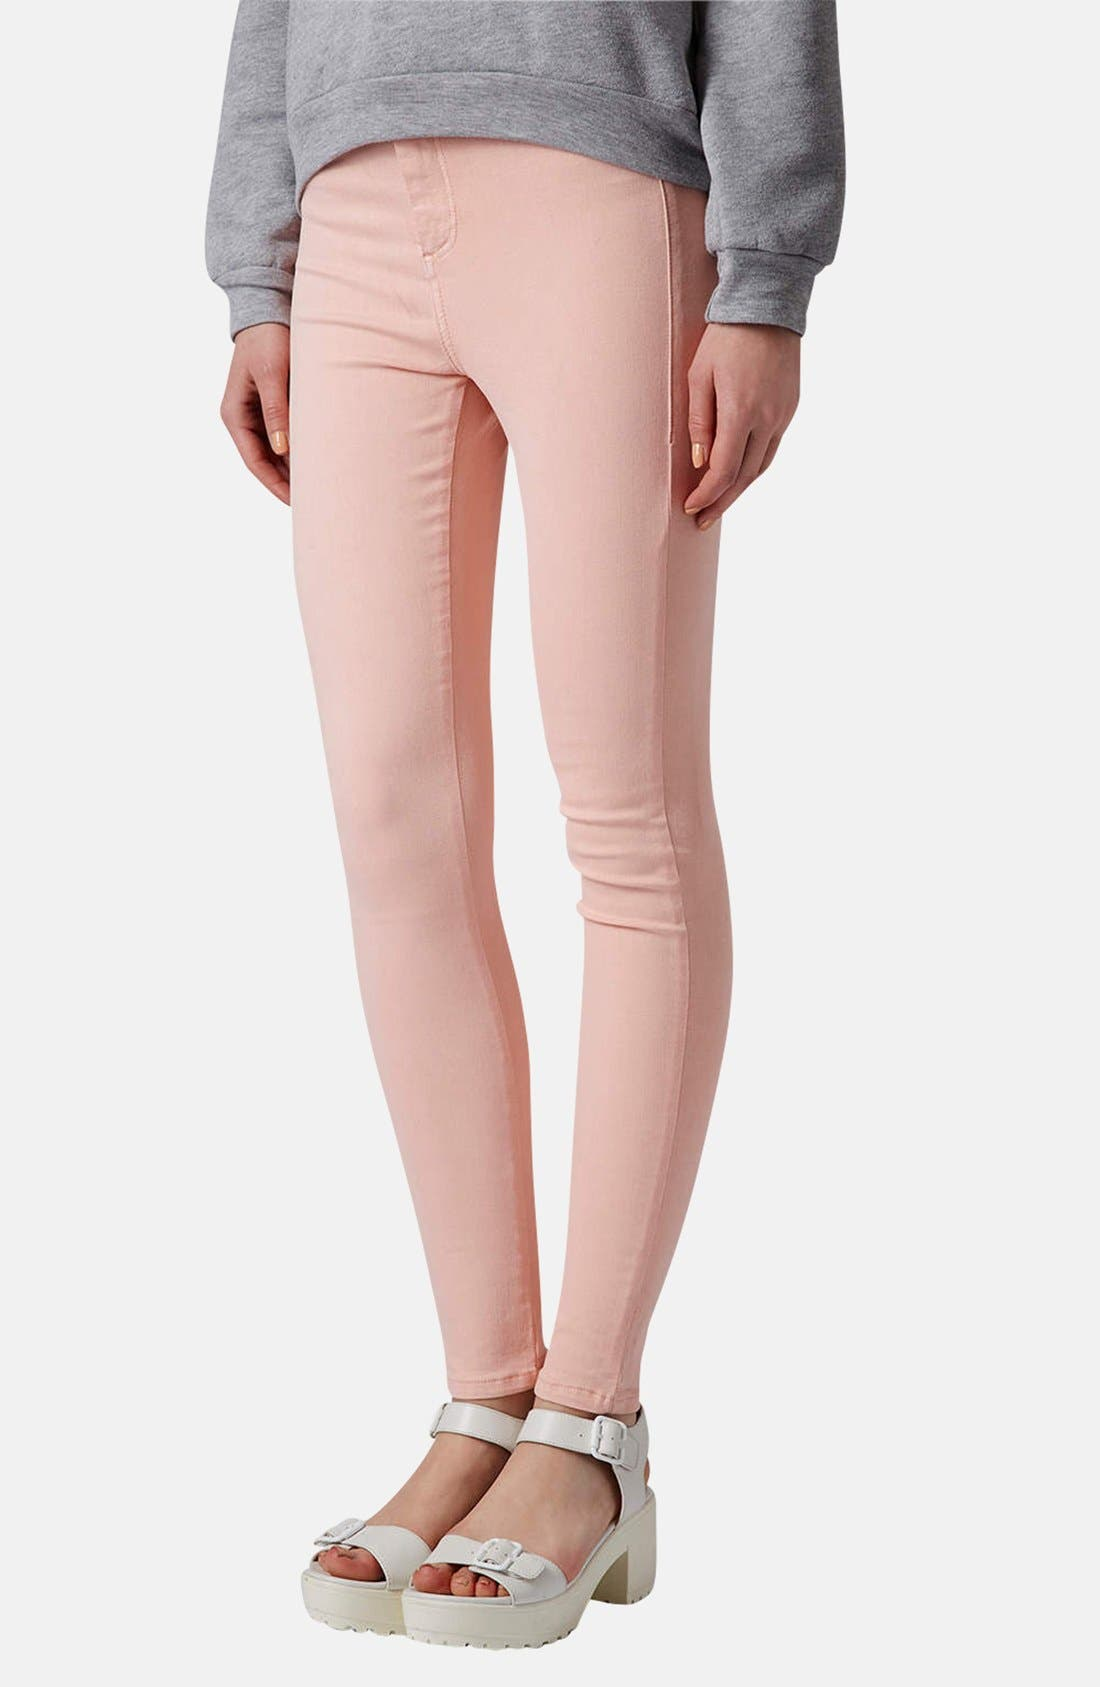 Alternate Image 1 Selected - Topshop Moto 'Joni' High Waist Skinny Jeans (Light Pink)